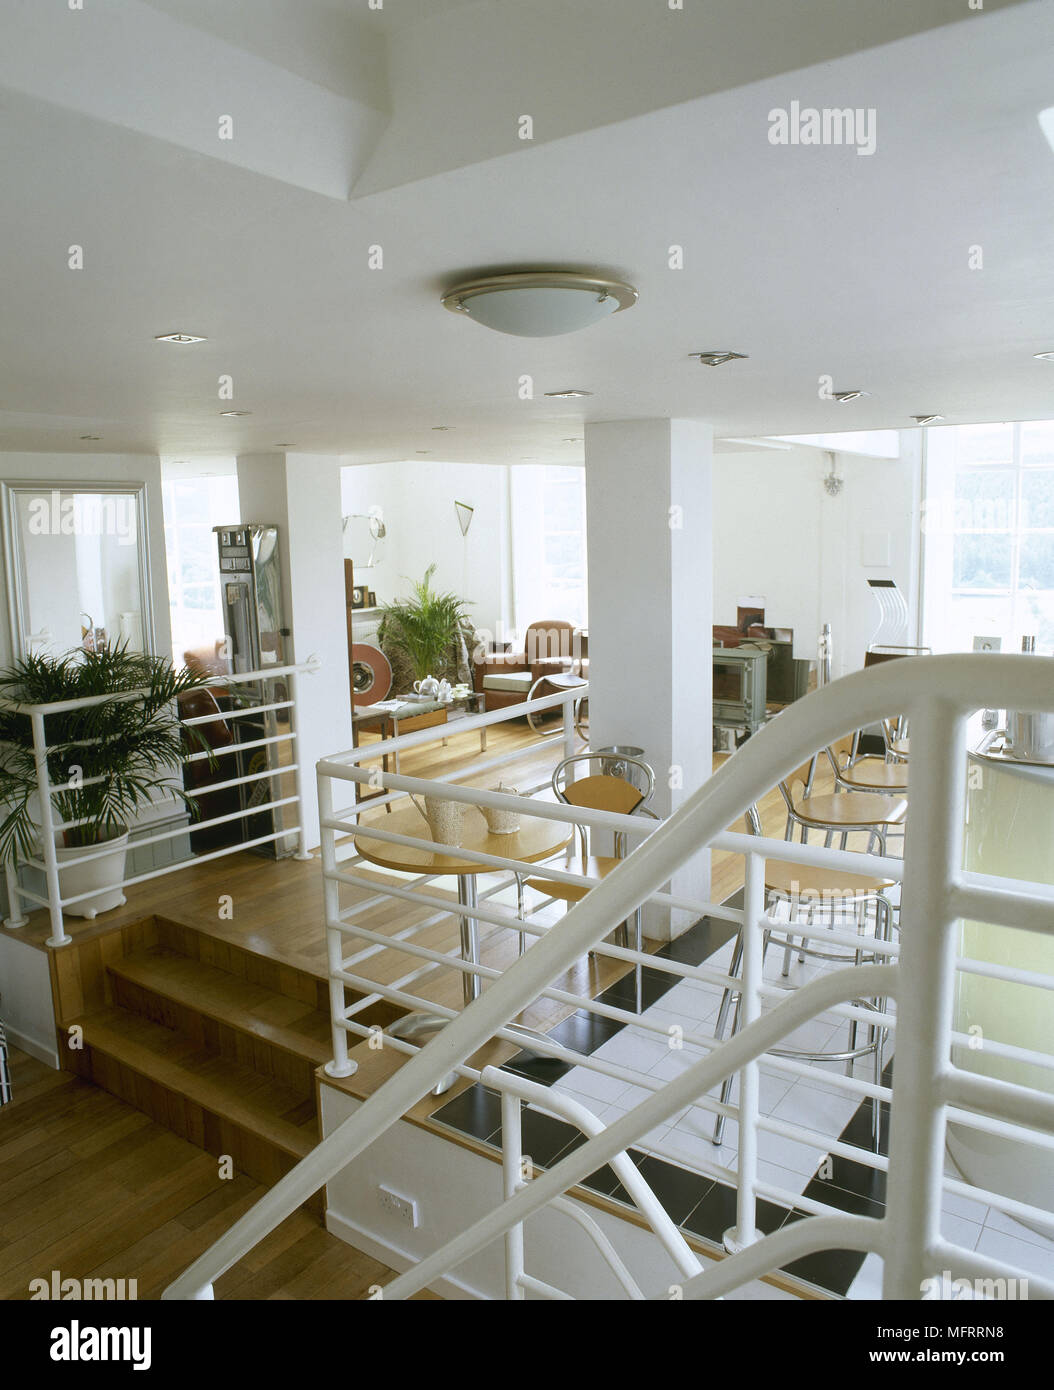 A Modern Open Plan Room With Split Level Wood Floor Stairs Separate Sitting  And Dining Areas High Ceilings